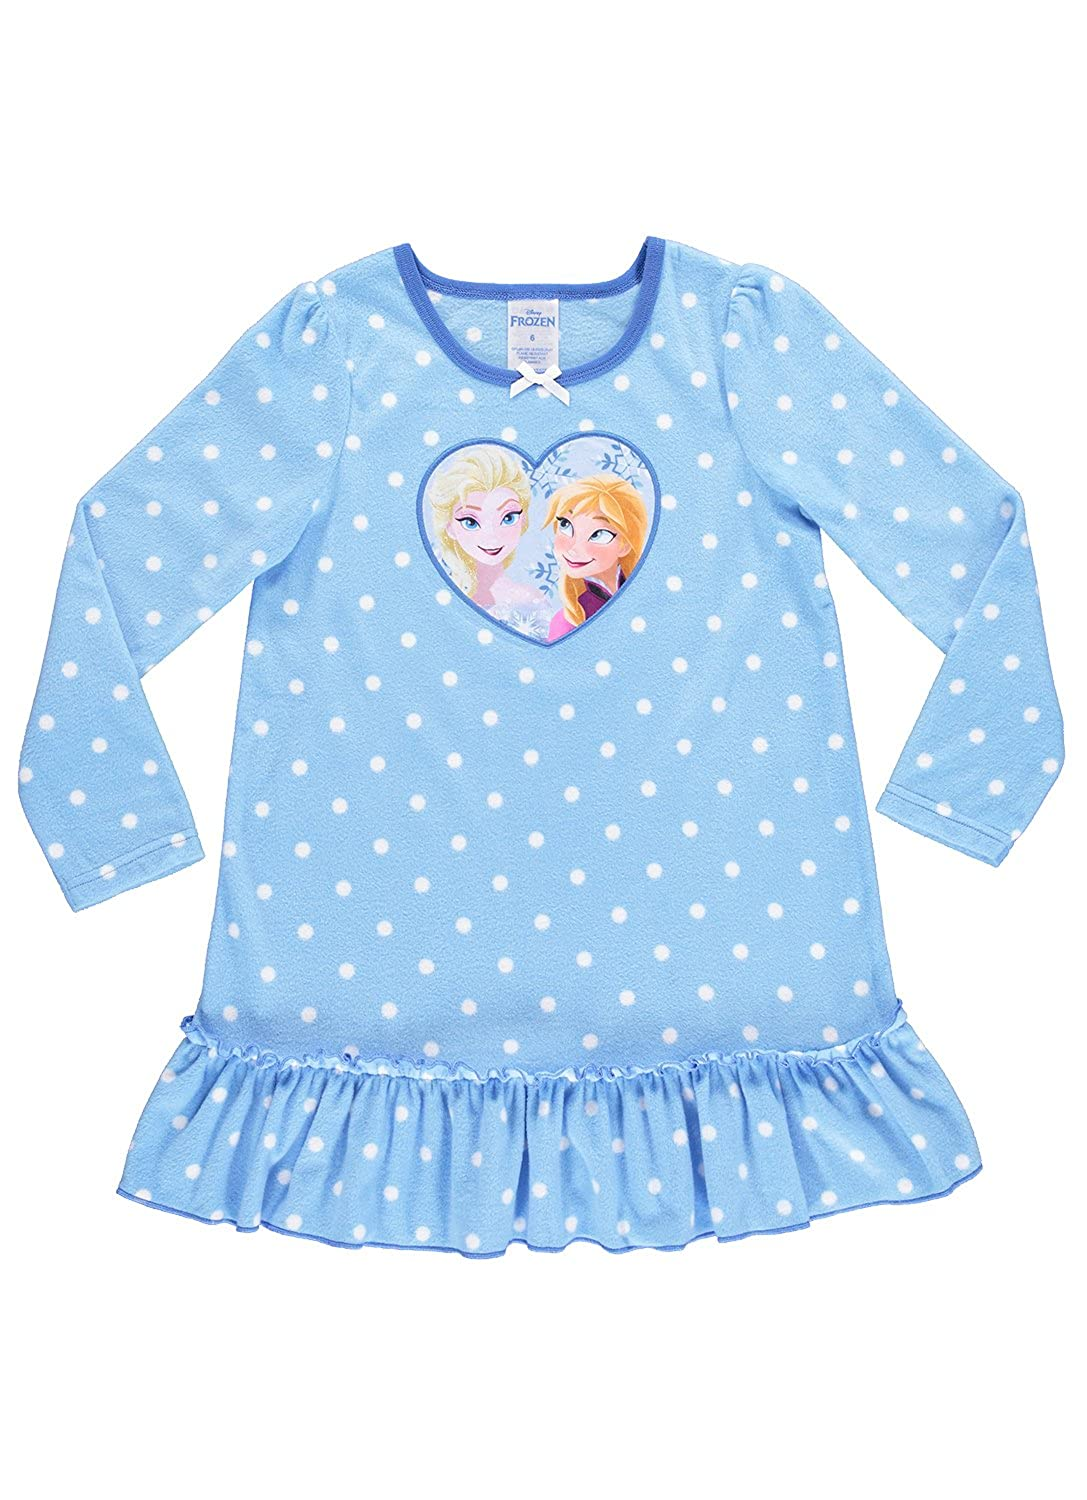 Disney Frozen Nightgown For Girls Soft /& Warm Sleepwear Blue PJ Gown